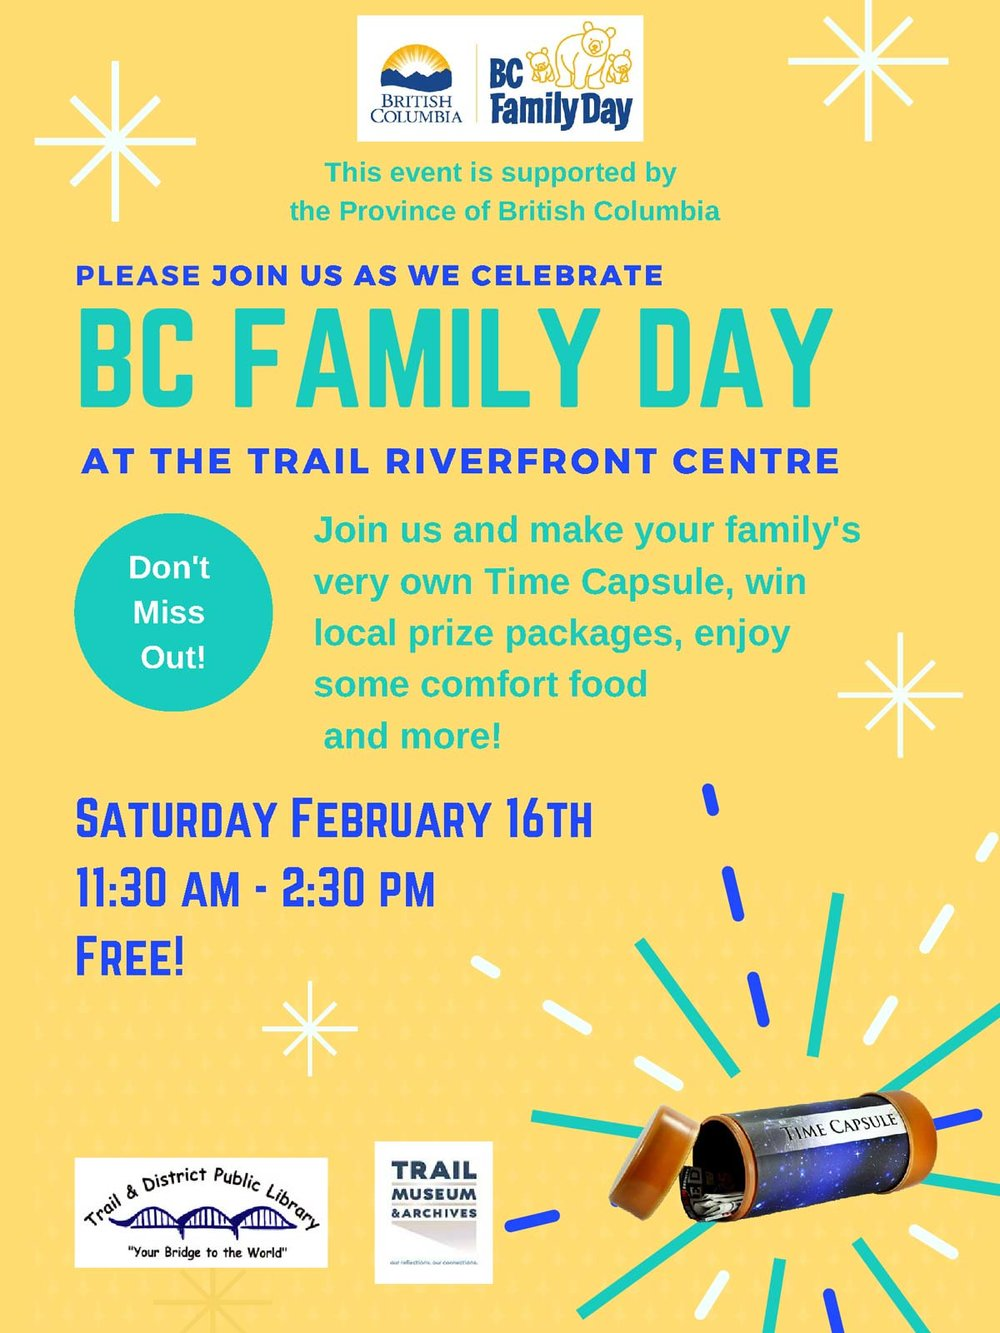 bc-family-day-poster-full.jpg